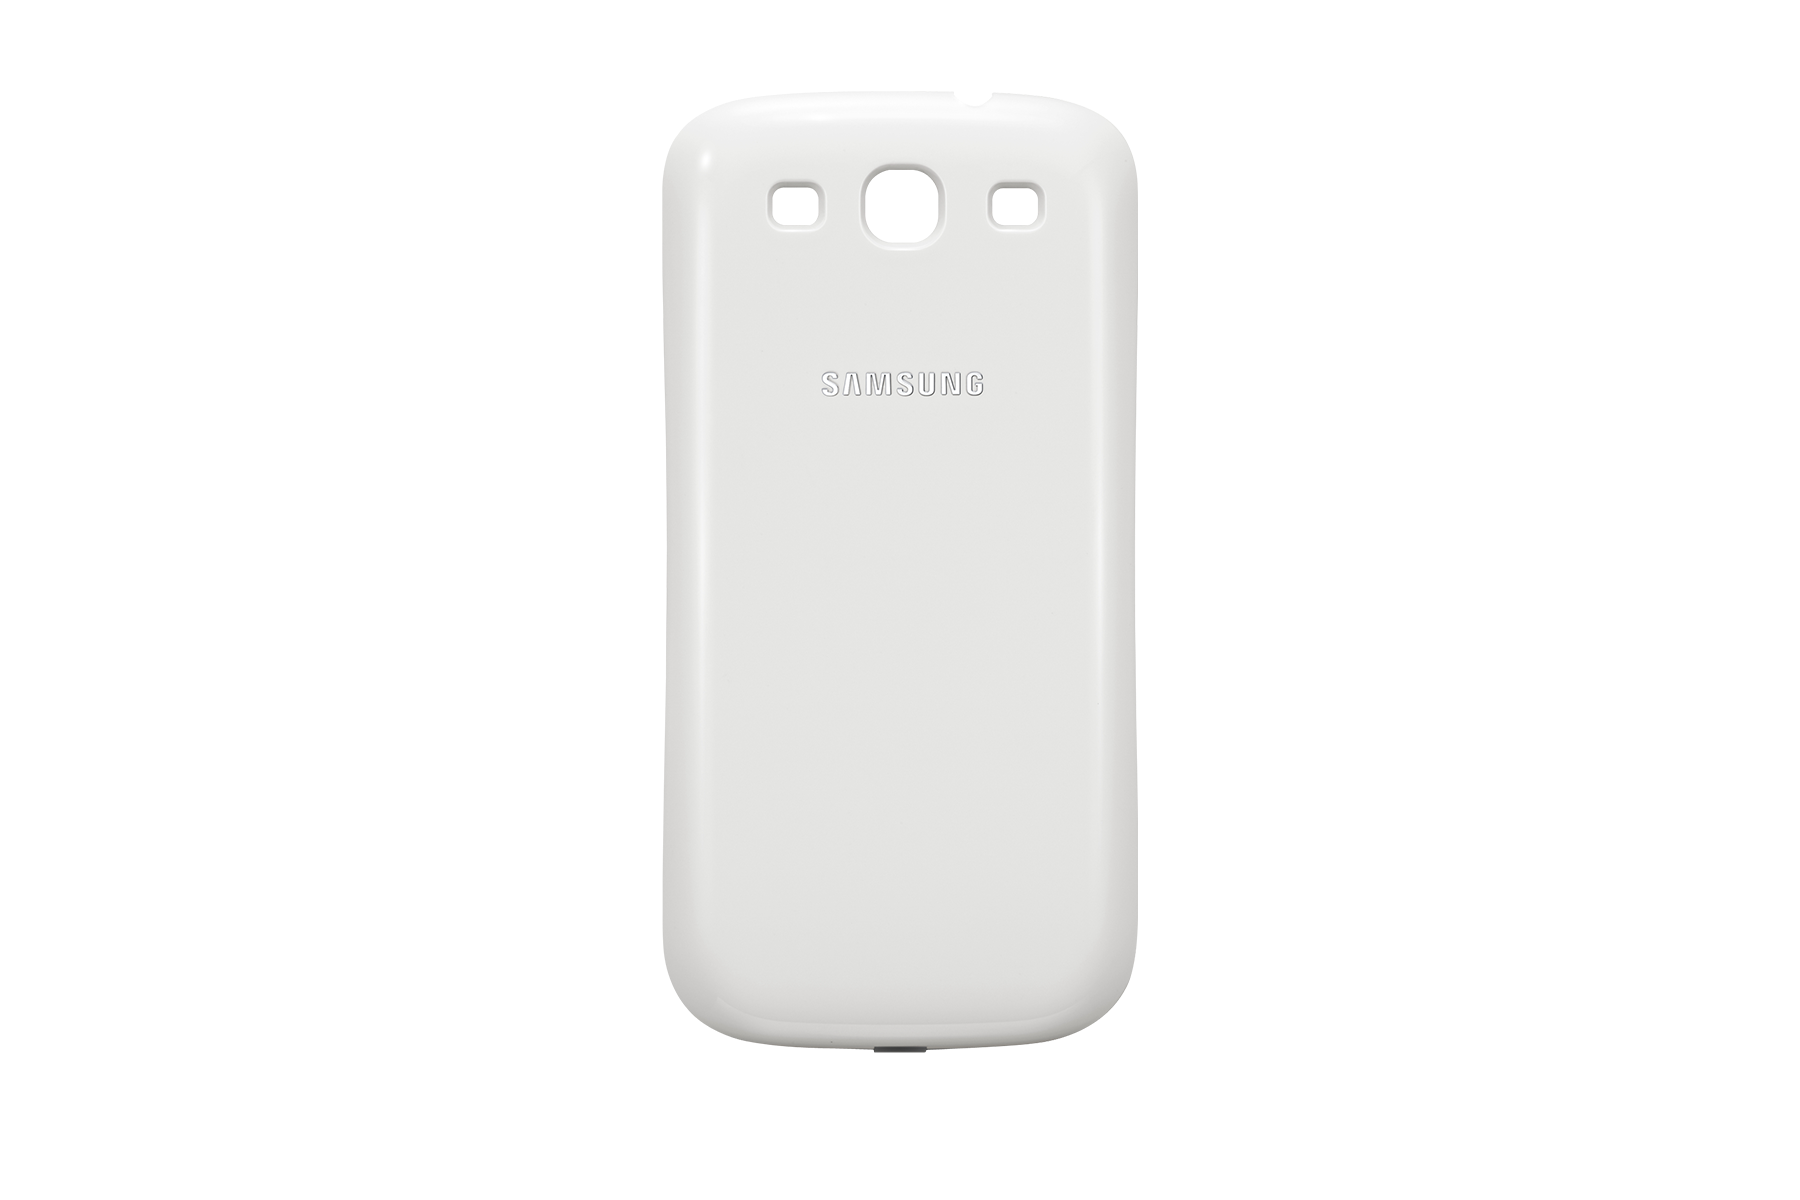 EB-K1G6UWU Galaxy S III White Extended Battery Kit